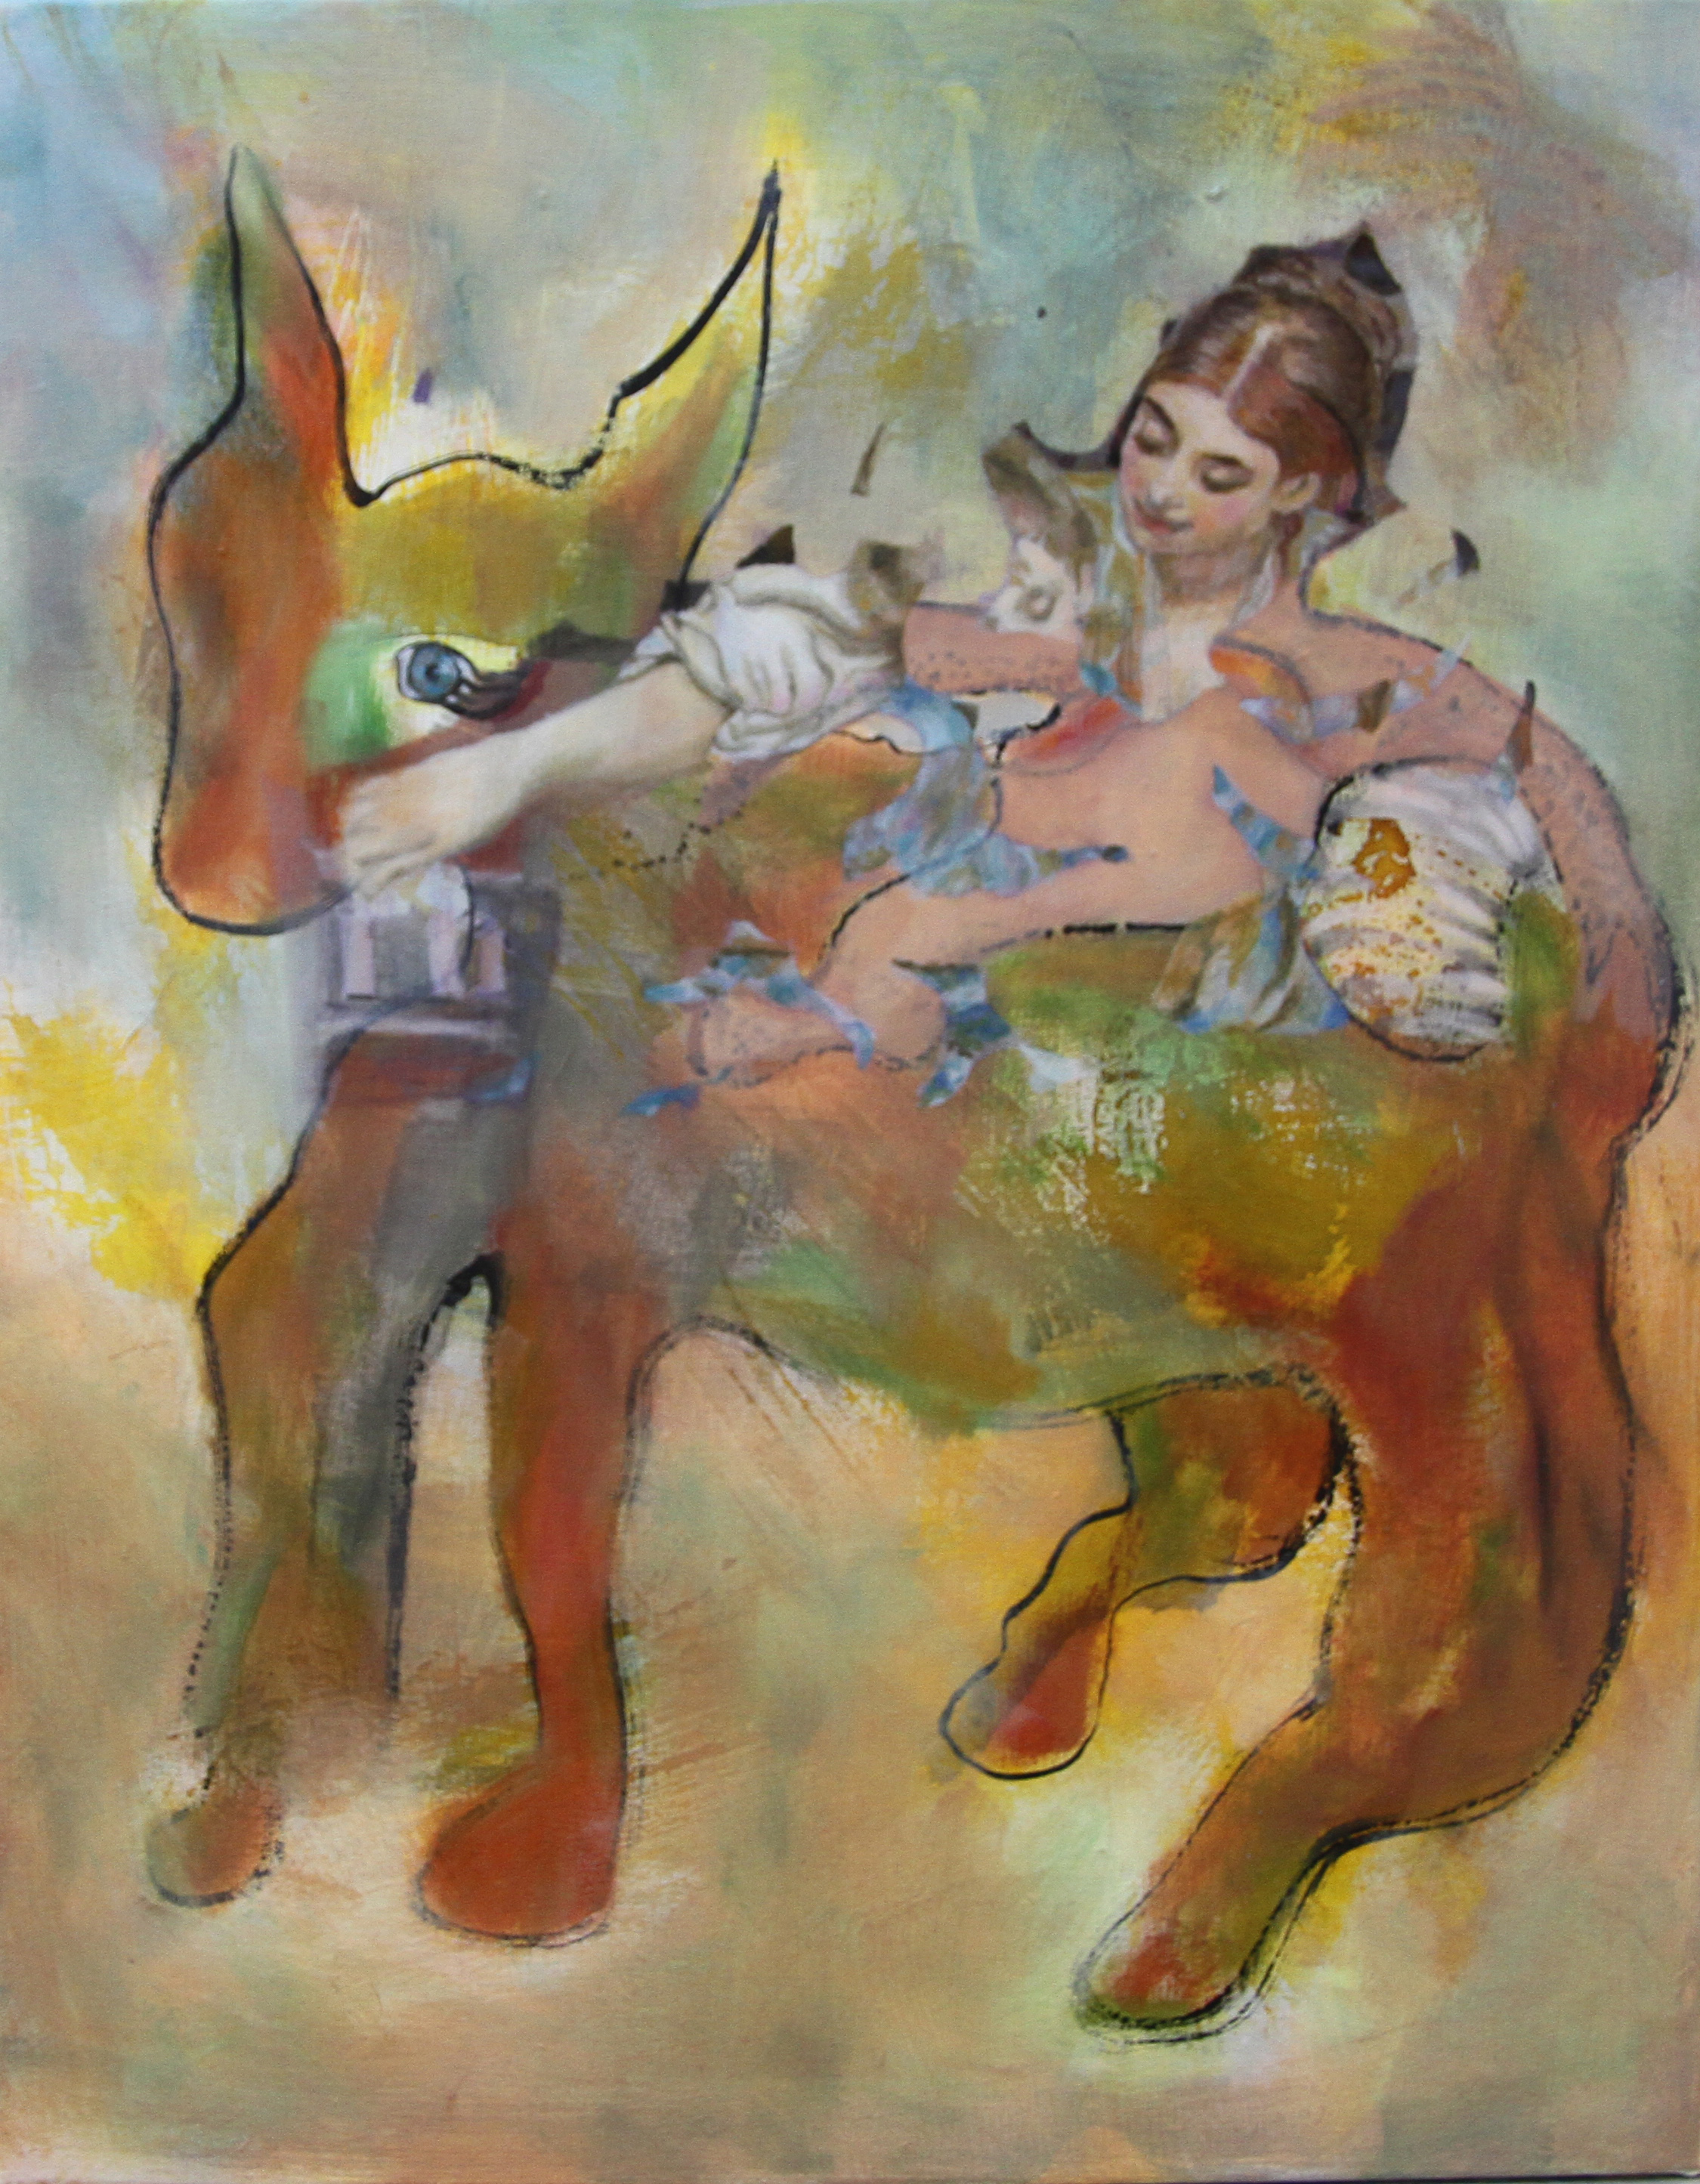 DAniela Benz, Donkey with woman, Ink and oil on canvas, 50x40x2 cm,  http://www.daniela-benz.ch